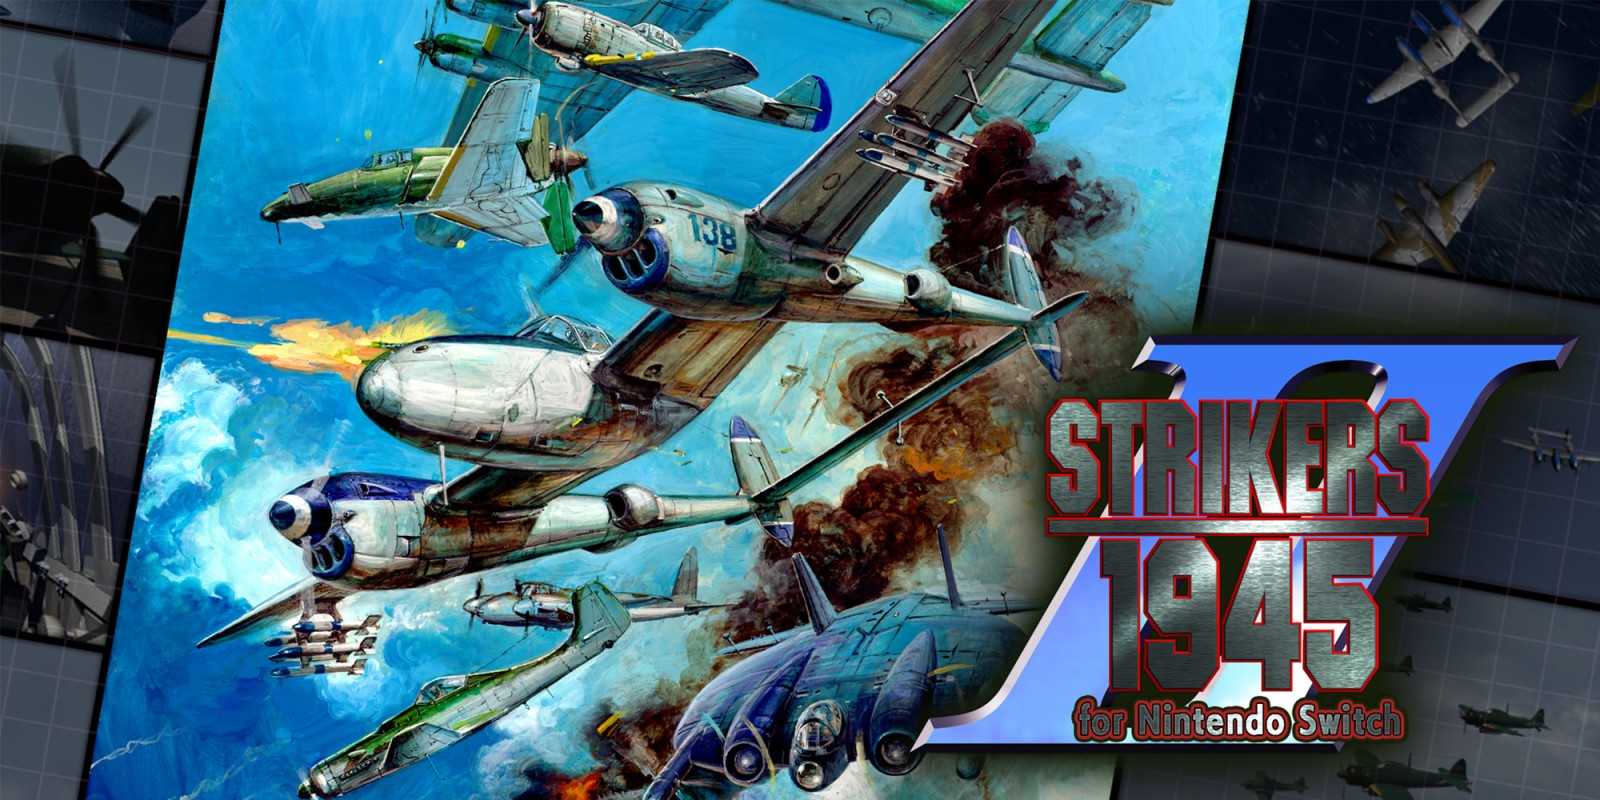 STRIKERS 1945 II for Nintendo Switch